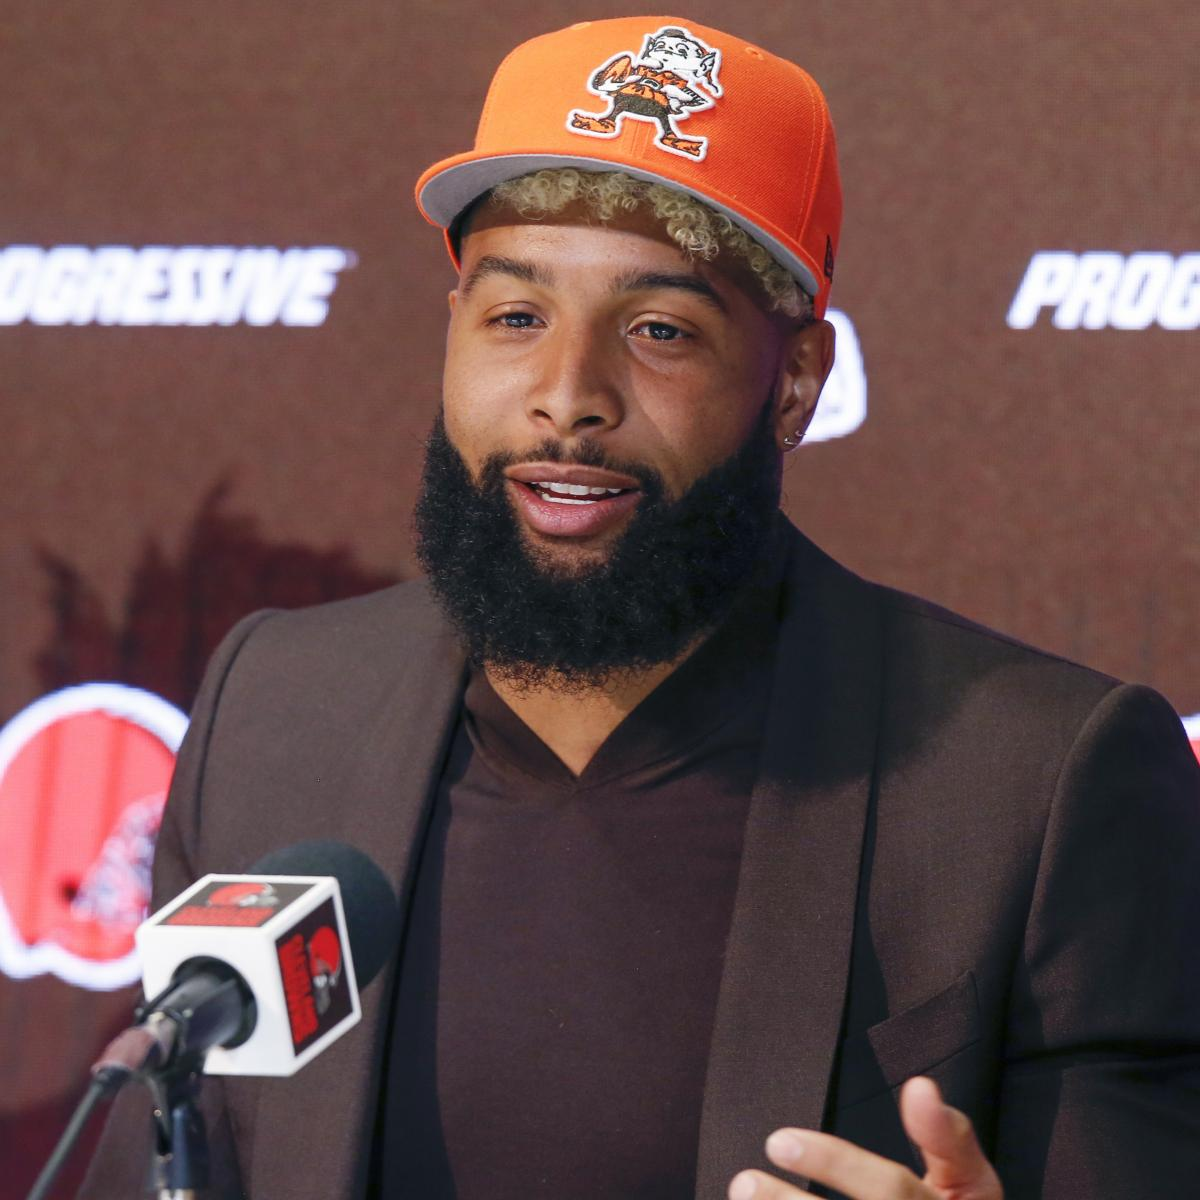 Odell Beckham Jr. turned heads when he said the Cleveland Browns would be the new Patriots , but he explained Thursday in an Instagram story this is just a goal for the organization ...